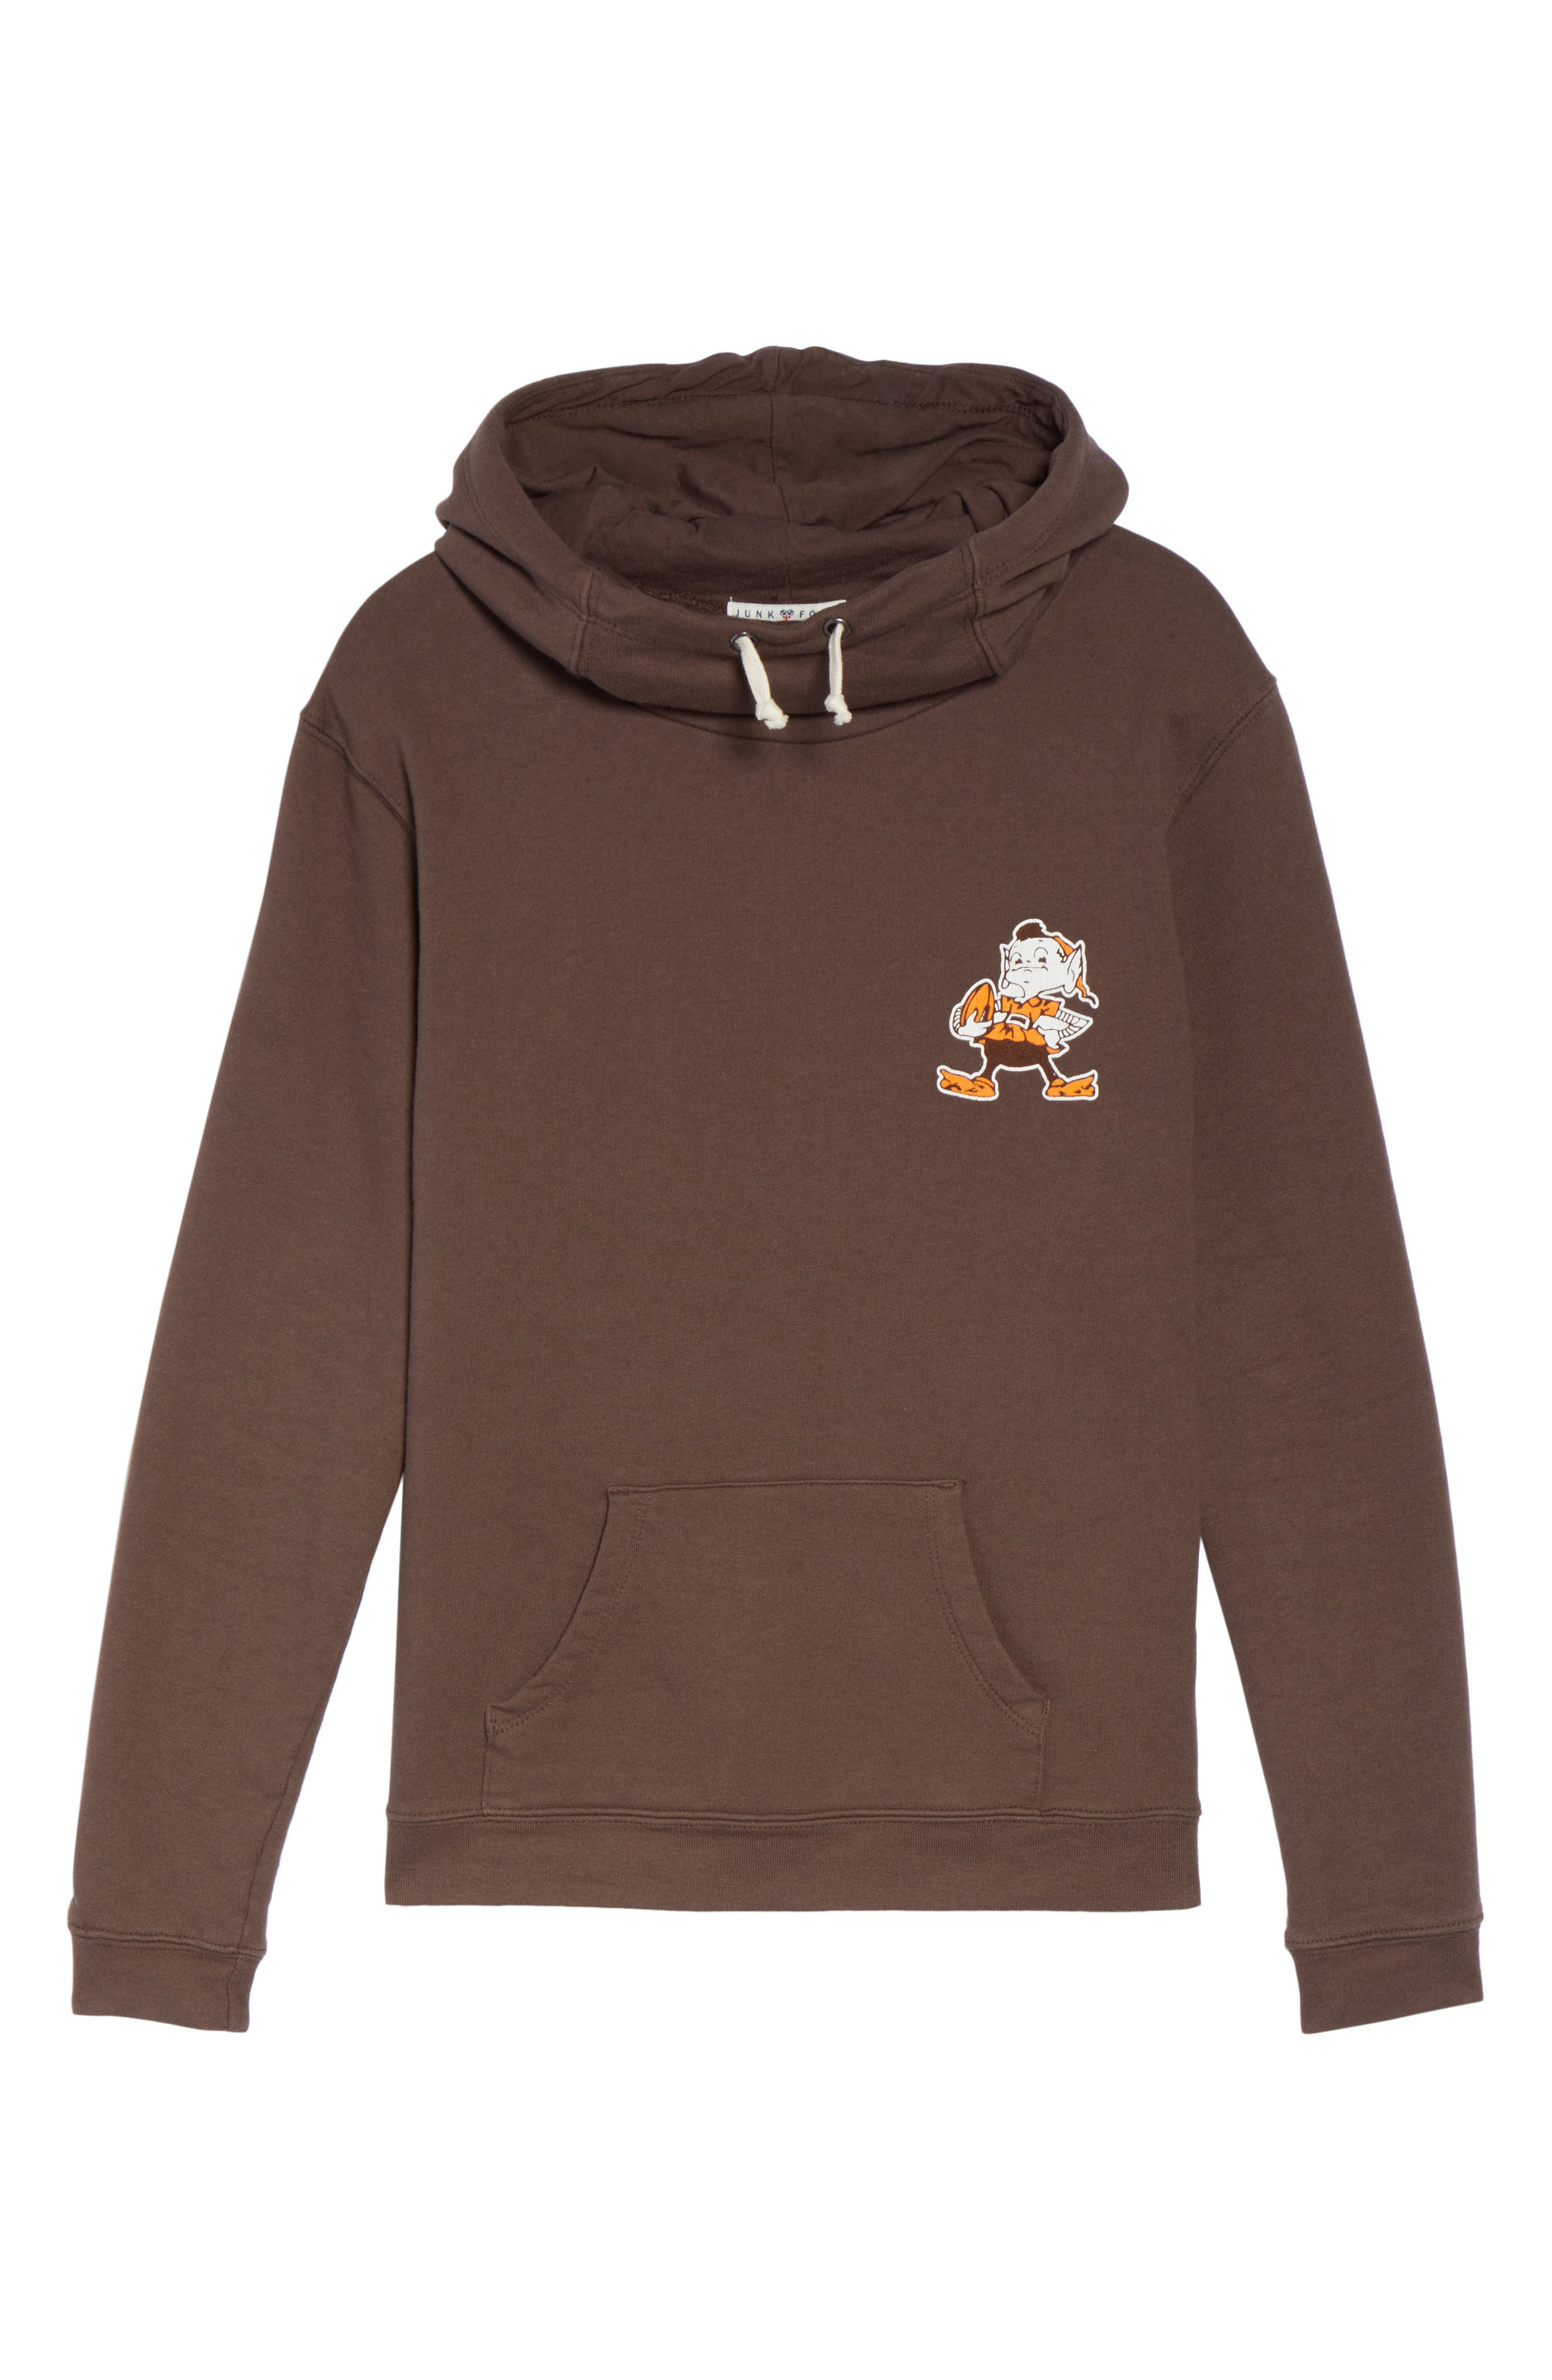 NFL Cleveland Browns Sunday Hoodie,                             Alternate thumbnail 4, color,                             Dark Chocolate